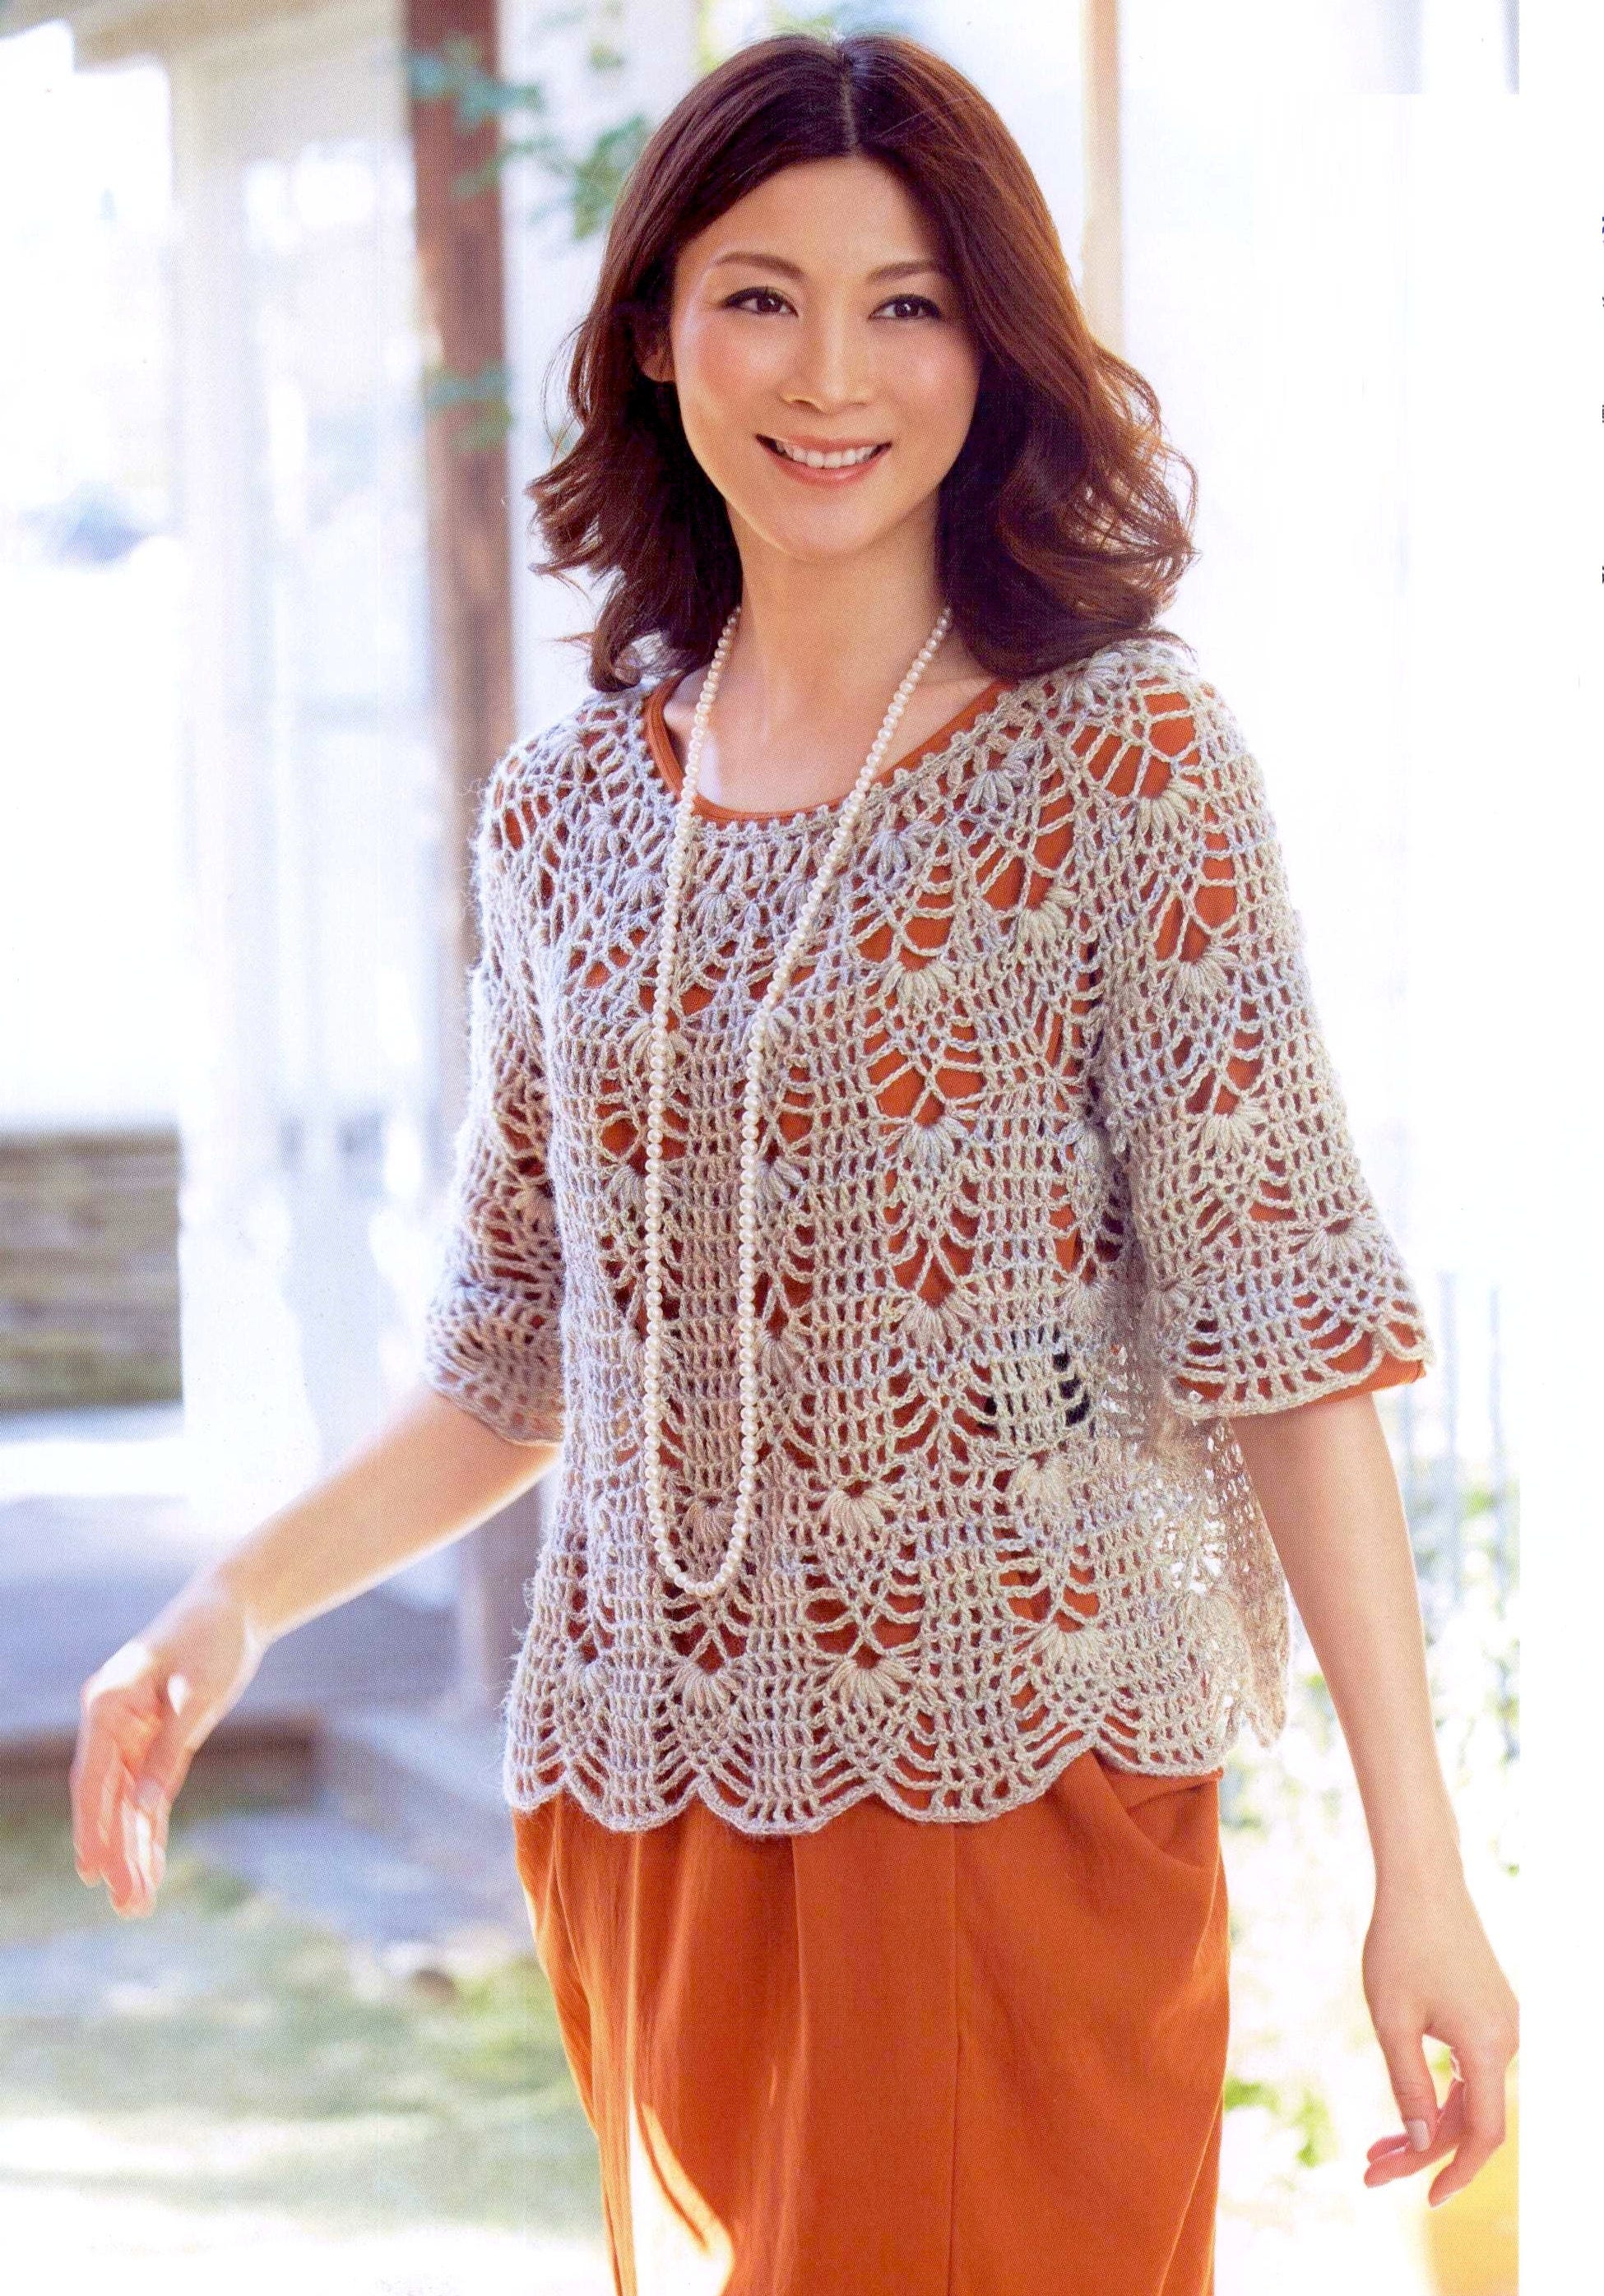 Womens Crochet Top Pattern Pdf Japanese With Etsy Patterns Diagram Charts Ladies Jumper Pullover Yoke Sweater Instant Download 473